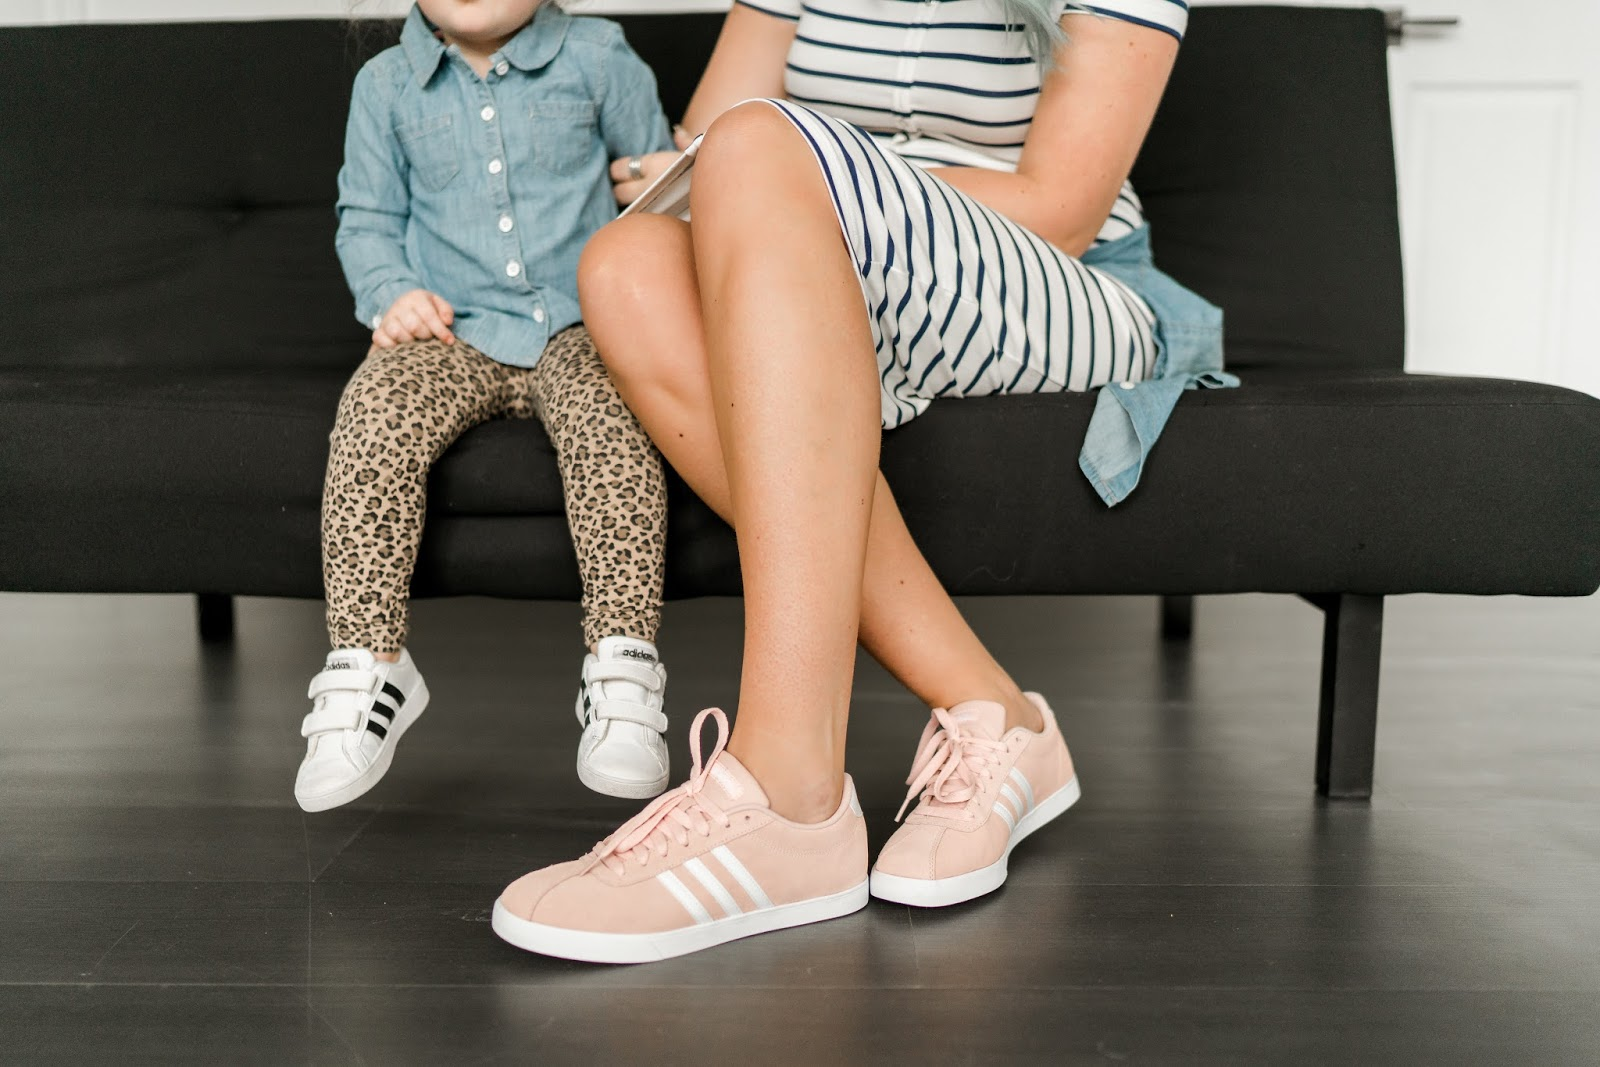 Mommy and Me Shoes, Adidas Shoes, Leopard Print